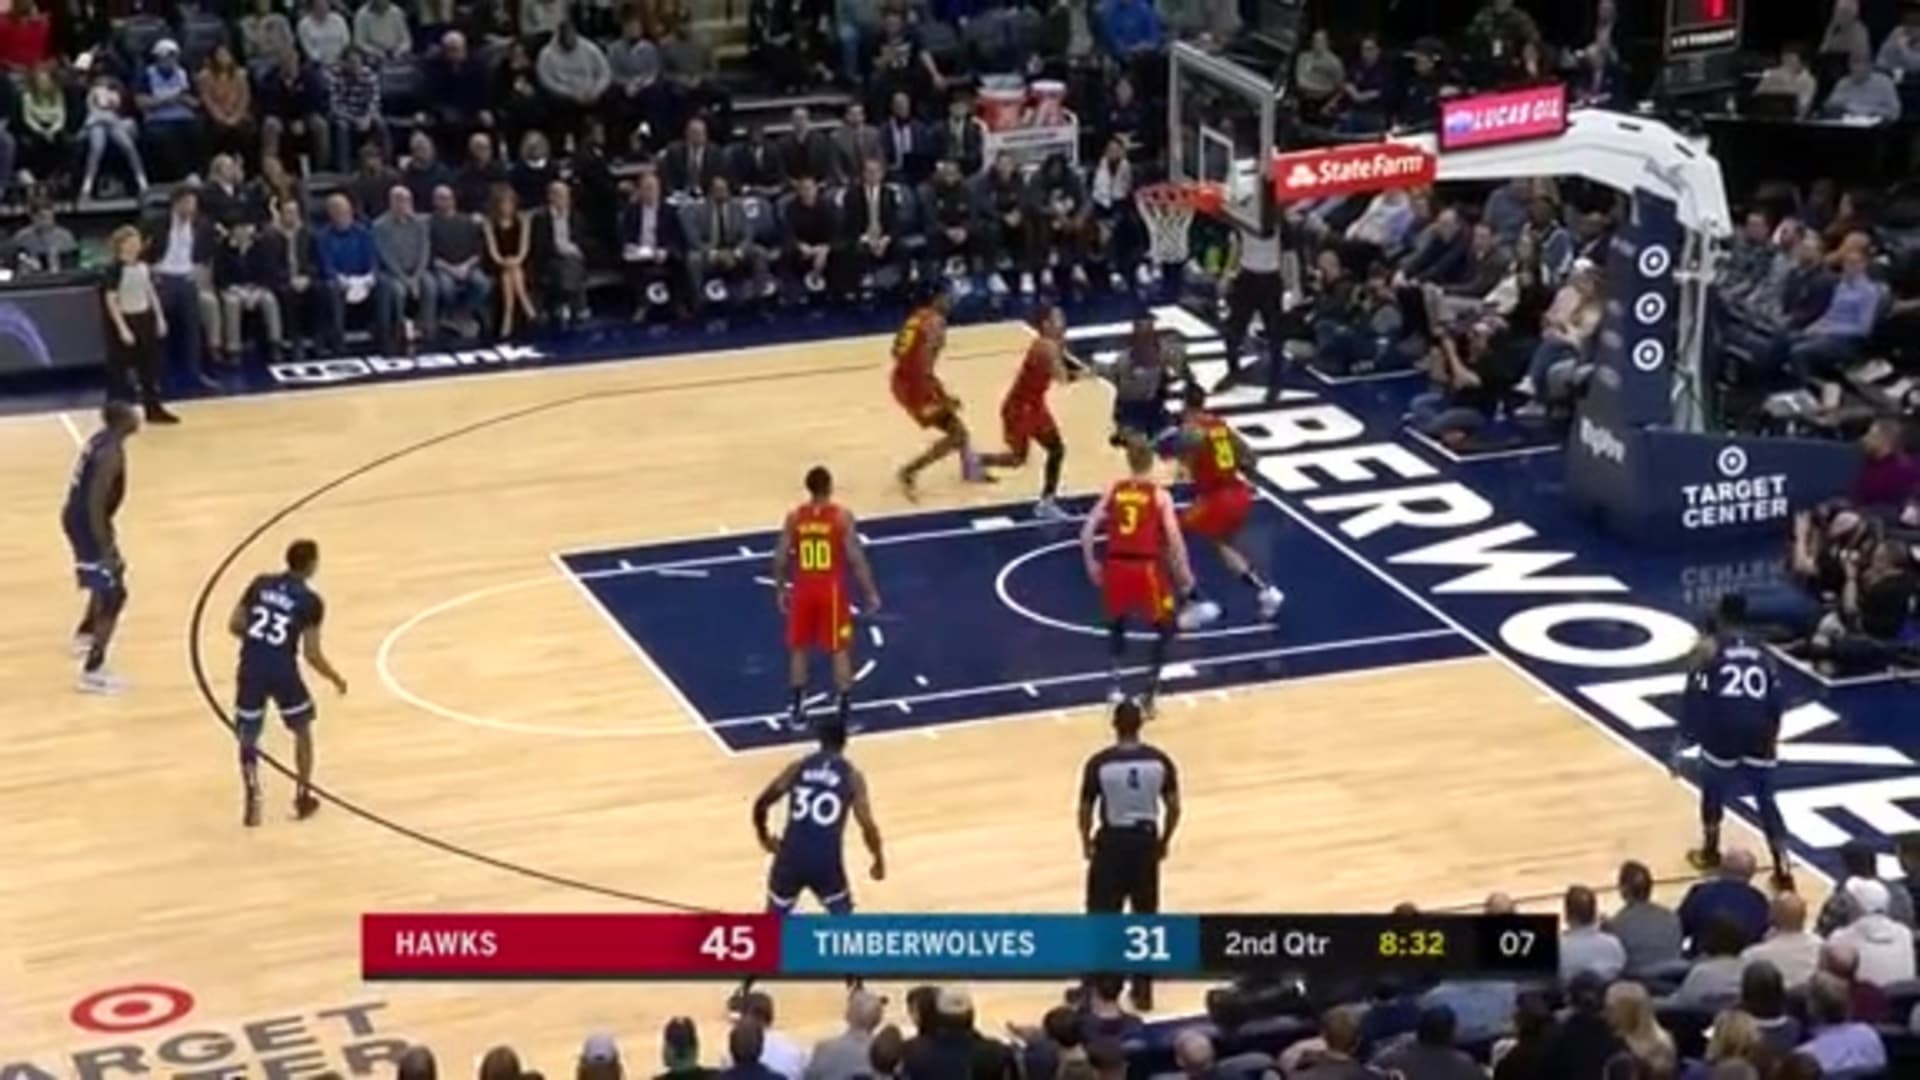 Wiggins Completes The Slam